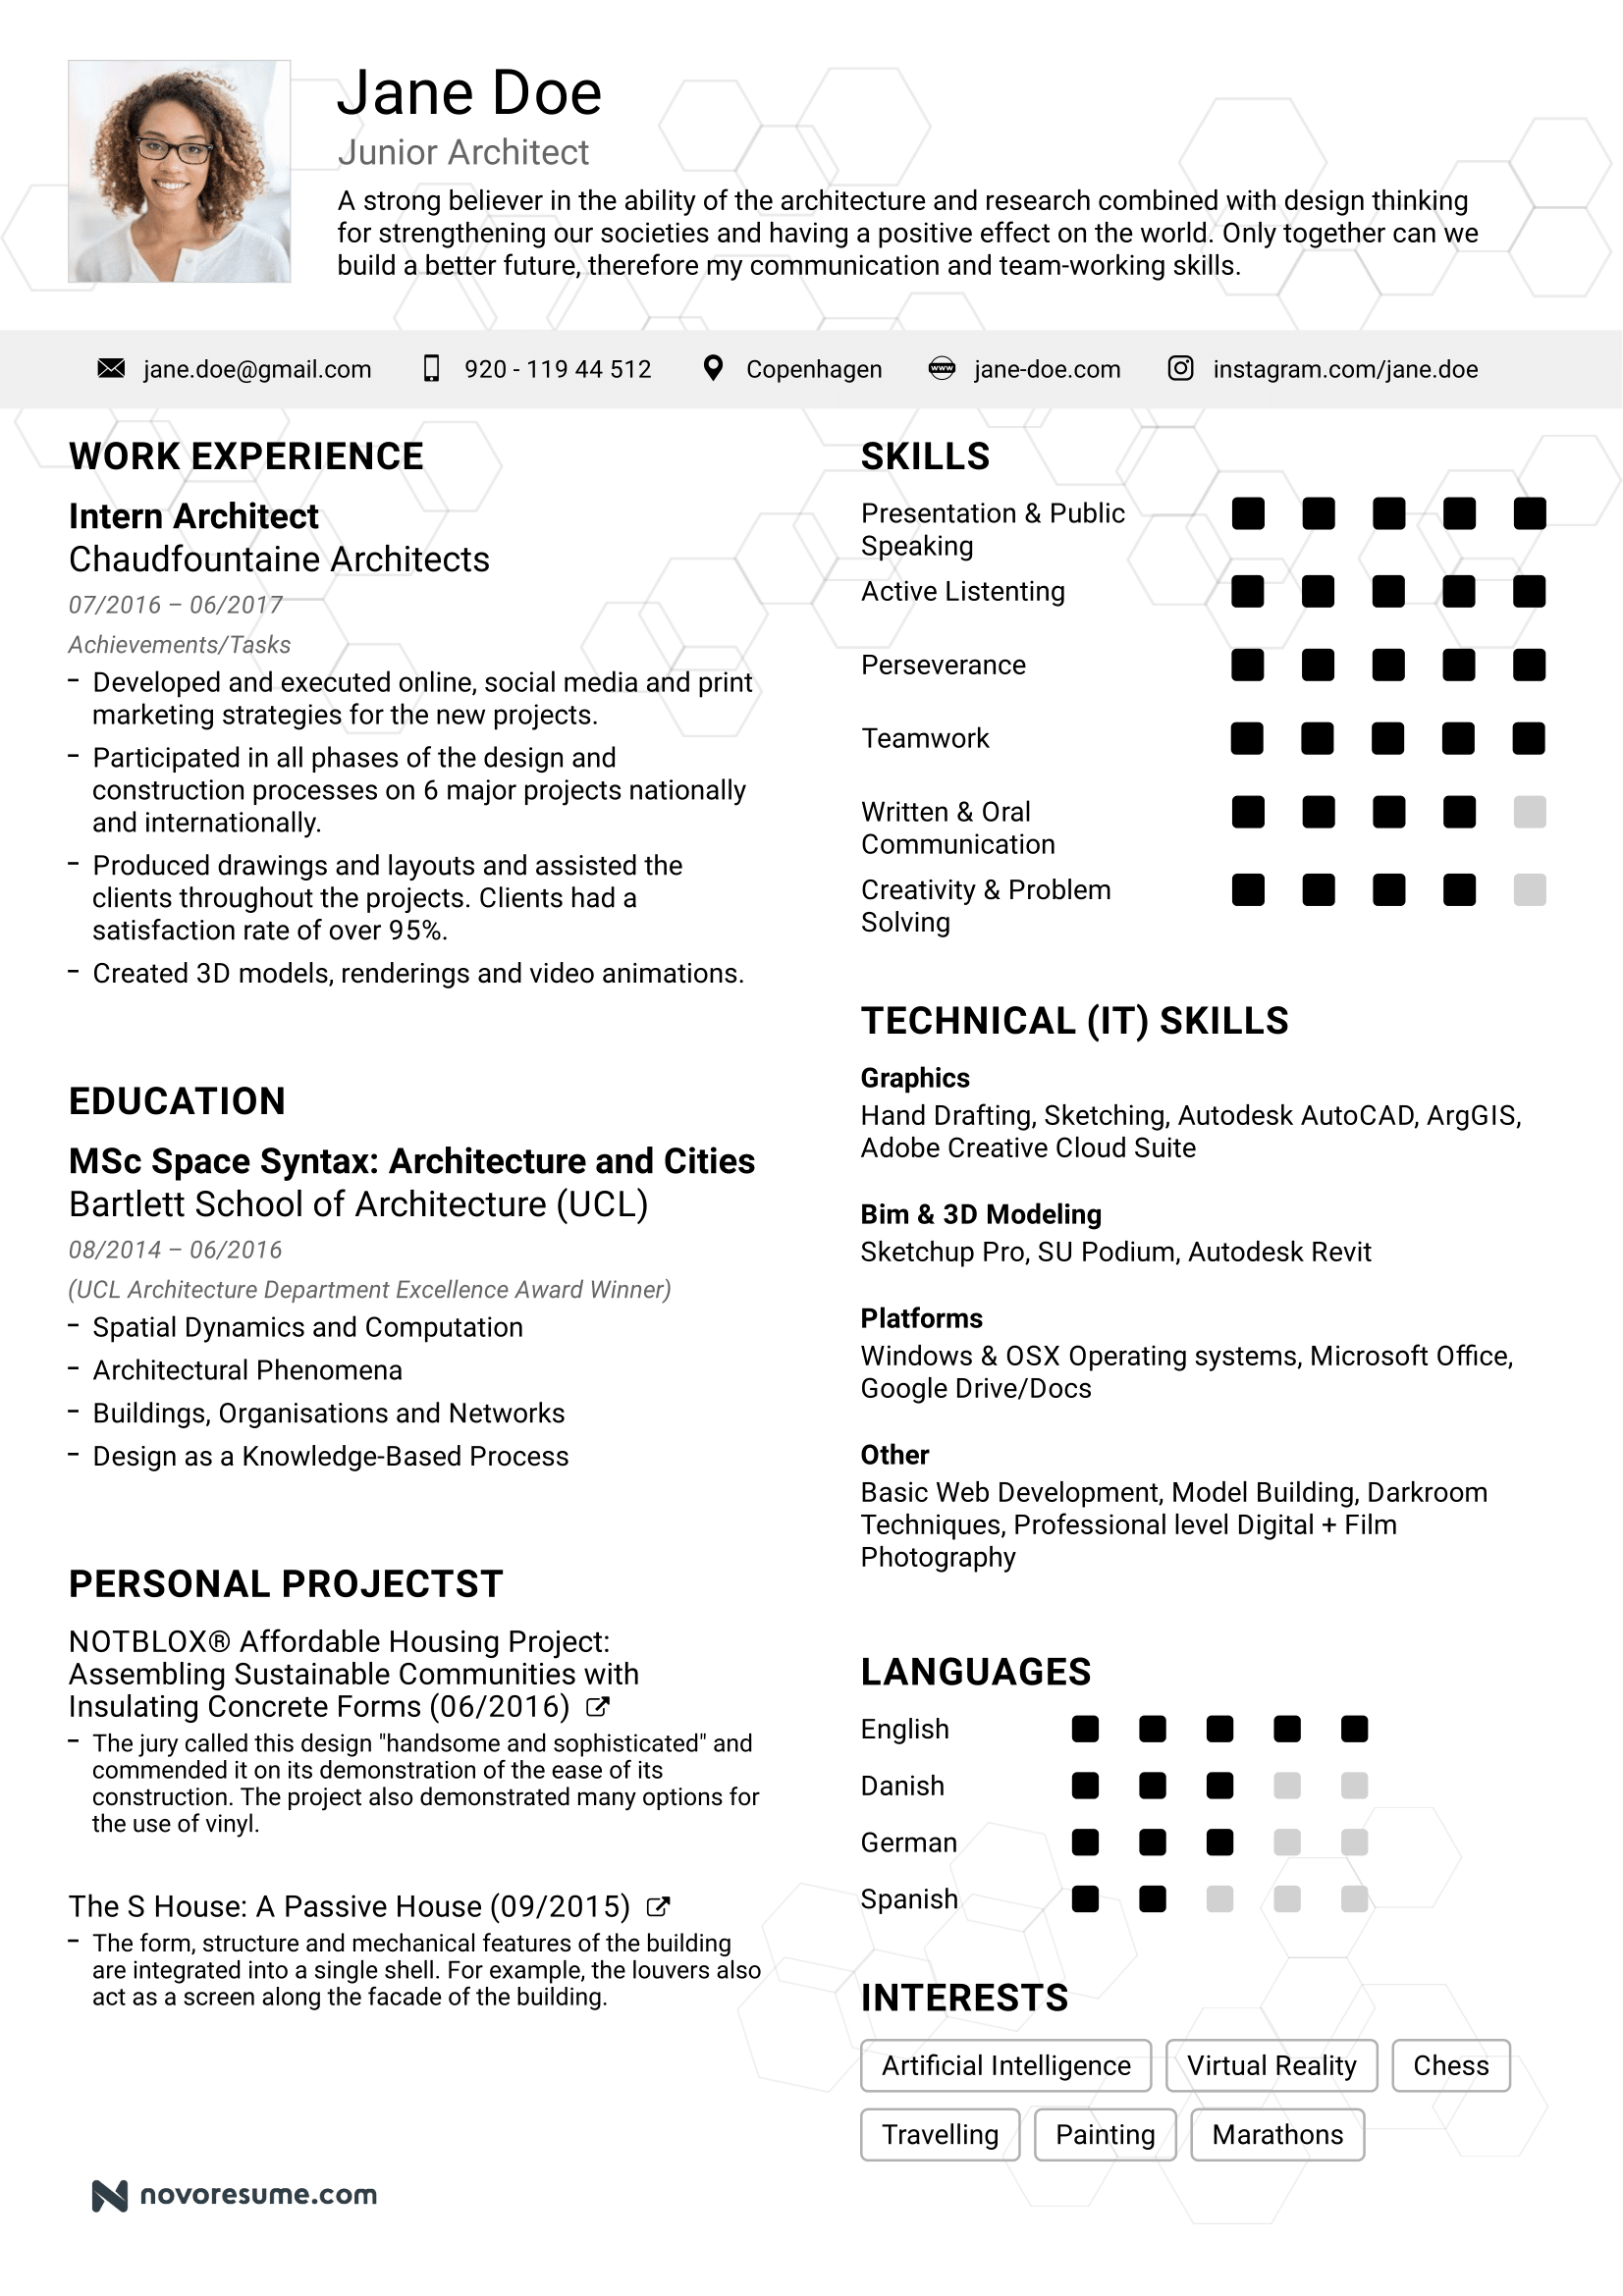 Resume Examples for Your 2019 Job